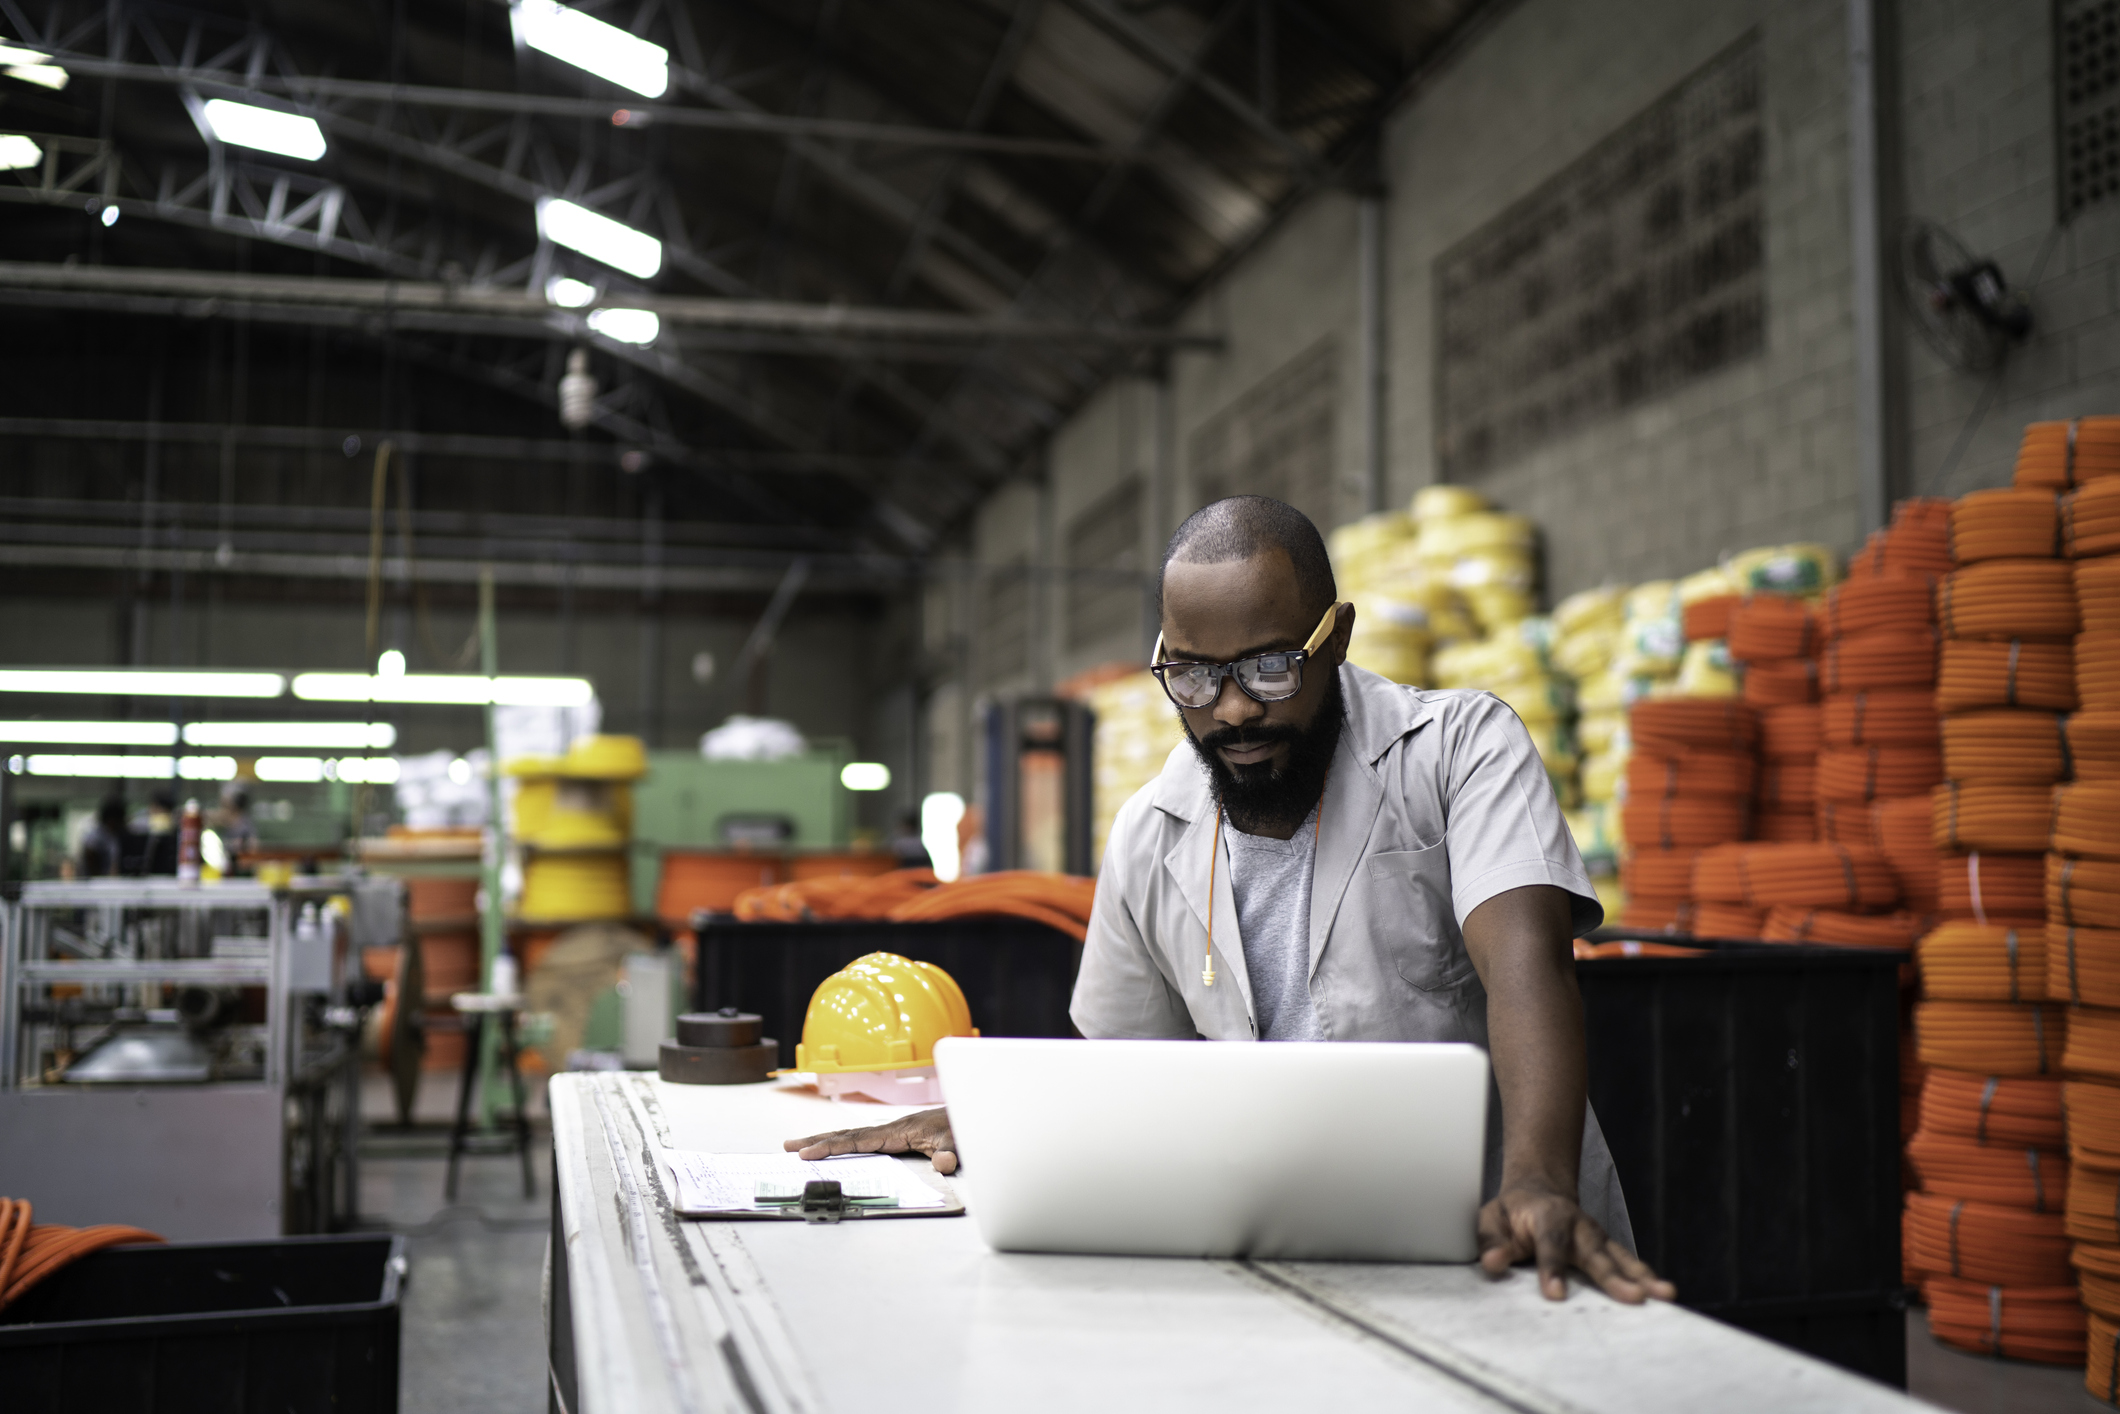 A manufacturing engineer in factory reviews work plans on laptop